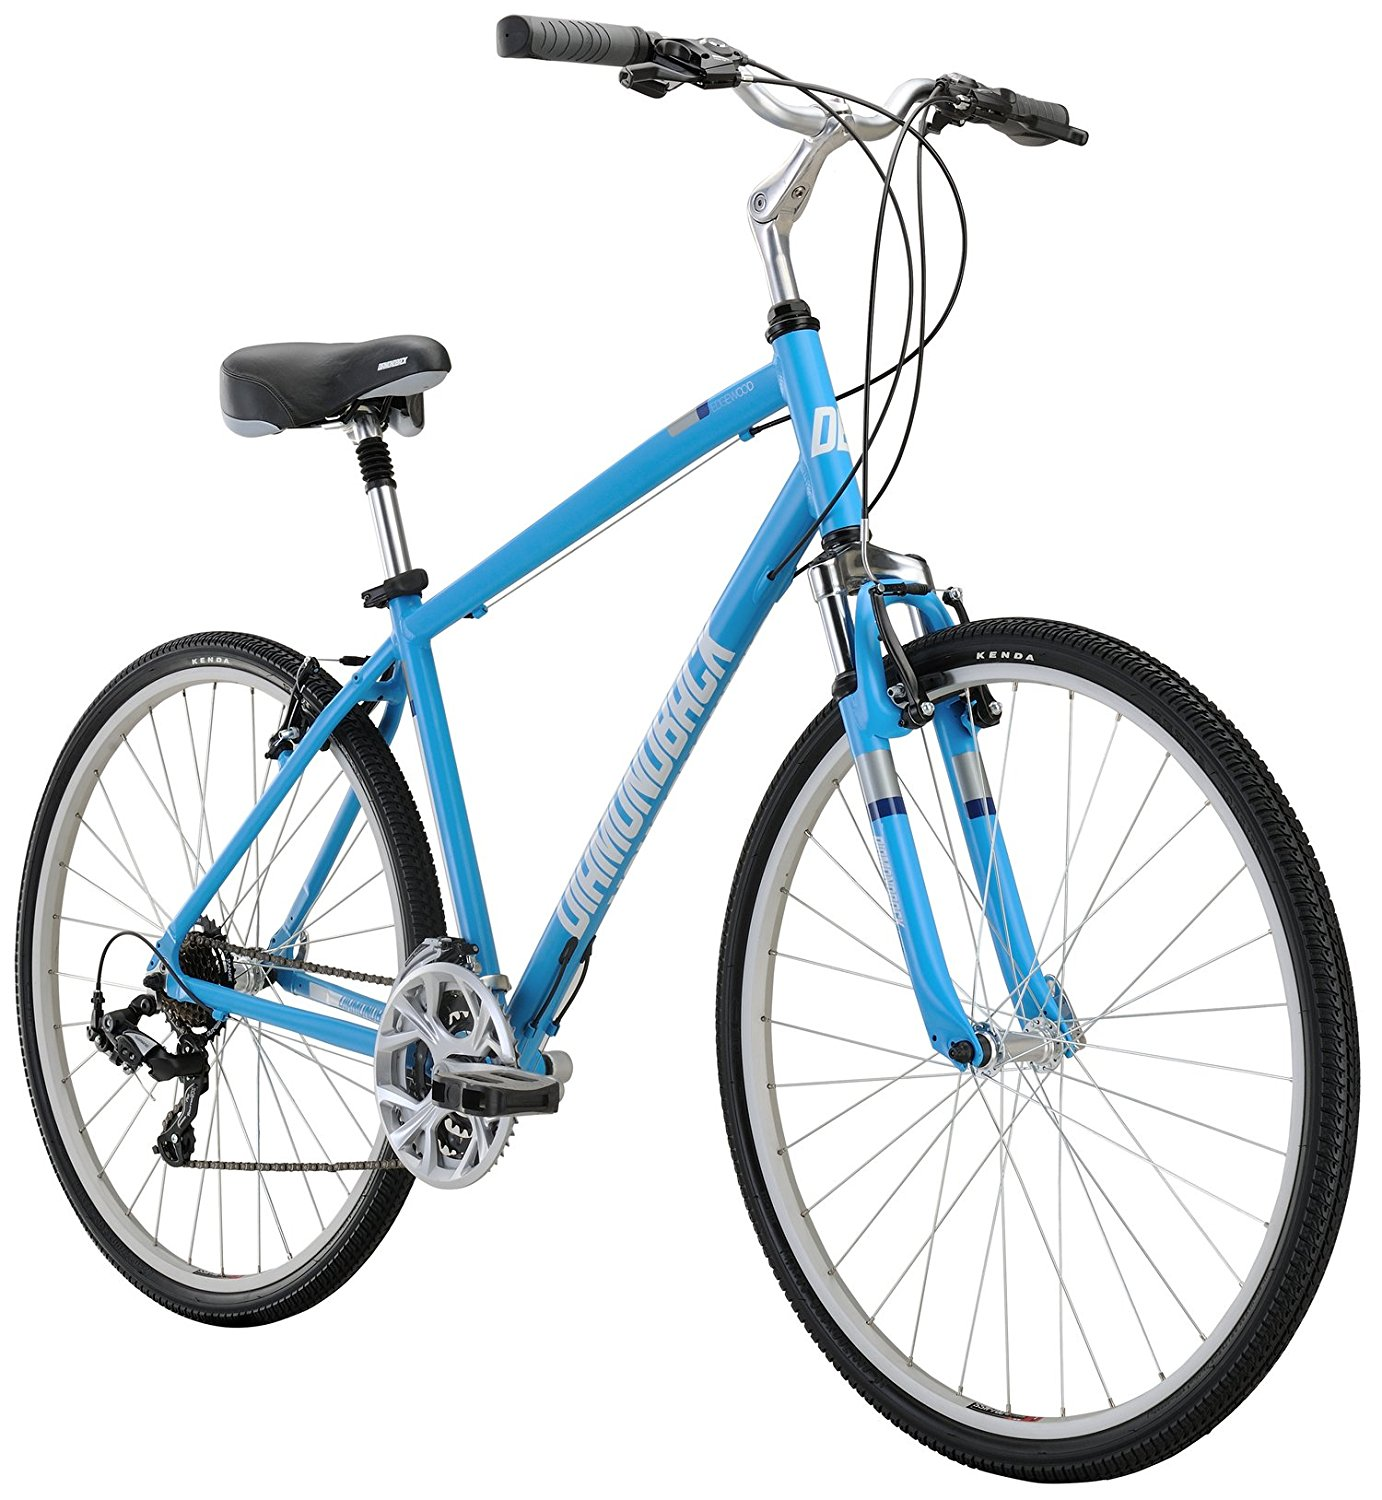 Diamondback Bicycles Edgewood Hybrid Bike Review